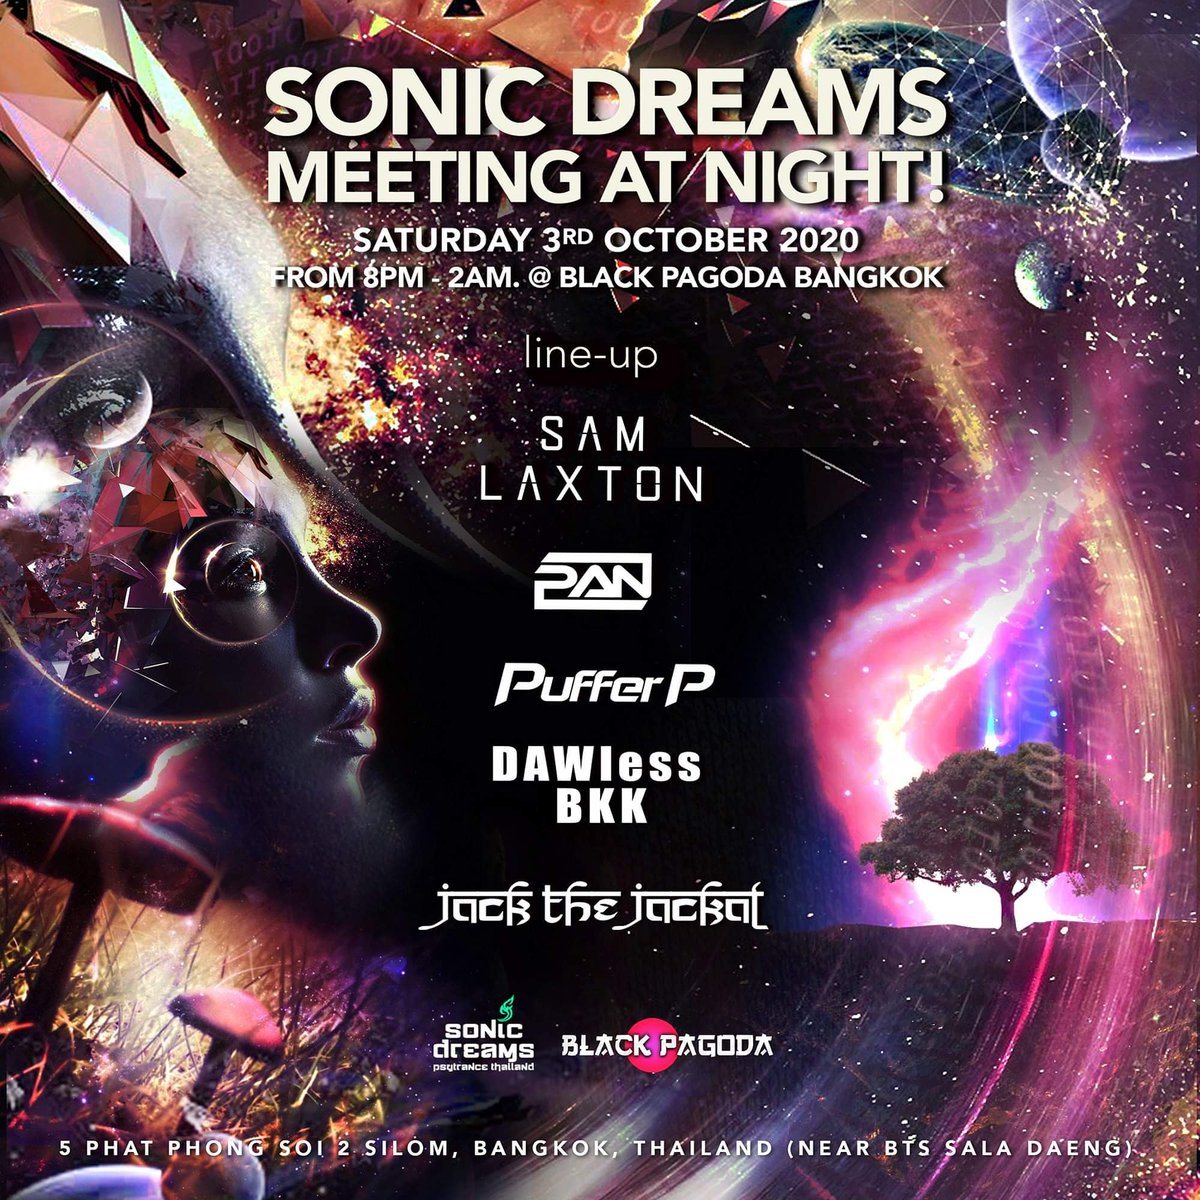 Excited for Sonic Dreams next month! Looking forward to playing PsyTrance again 😀  3rd October at Black Pagoda, Bangkok 🙏 https://t.co/8Q2zv7Ri5k